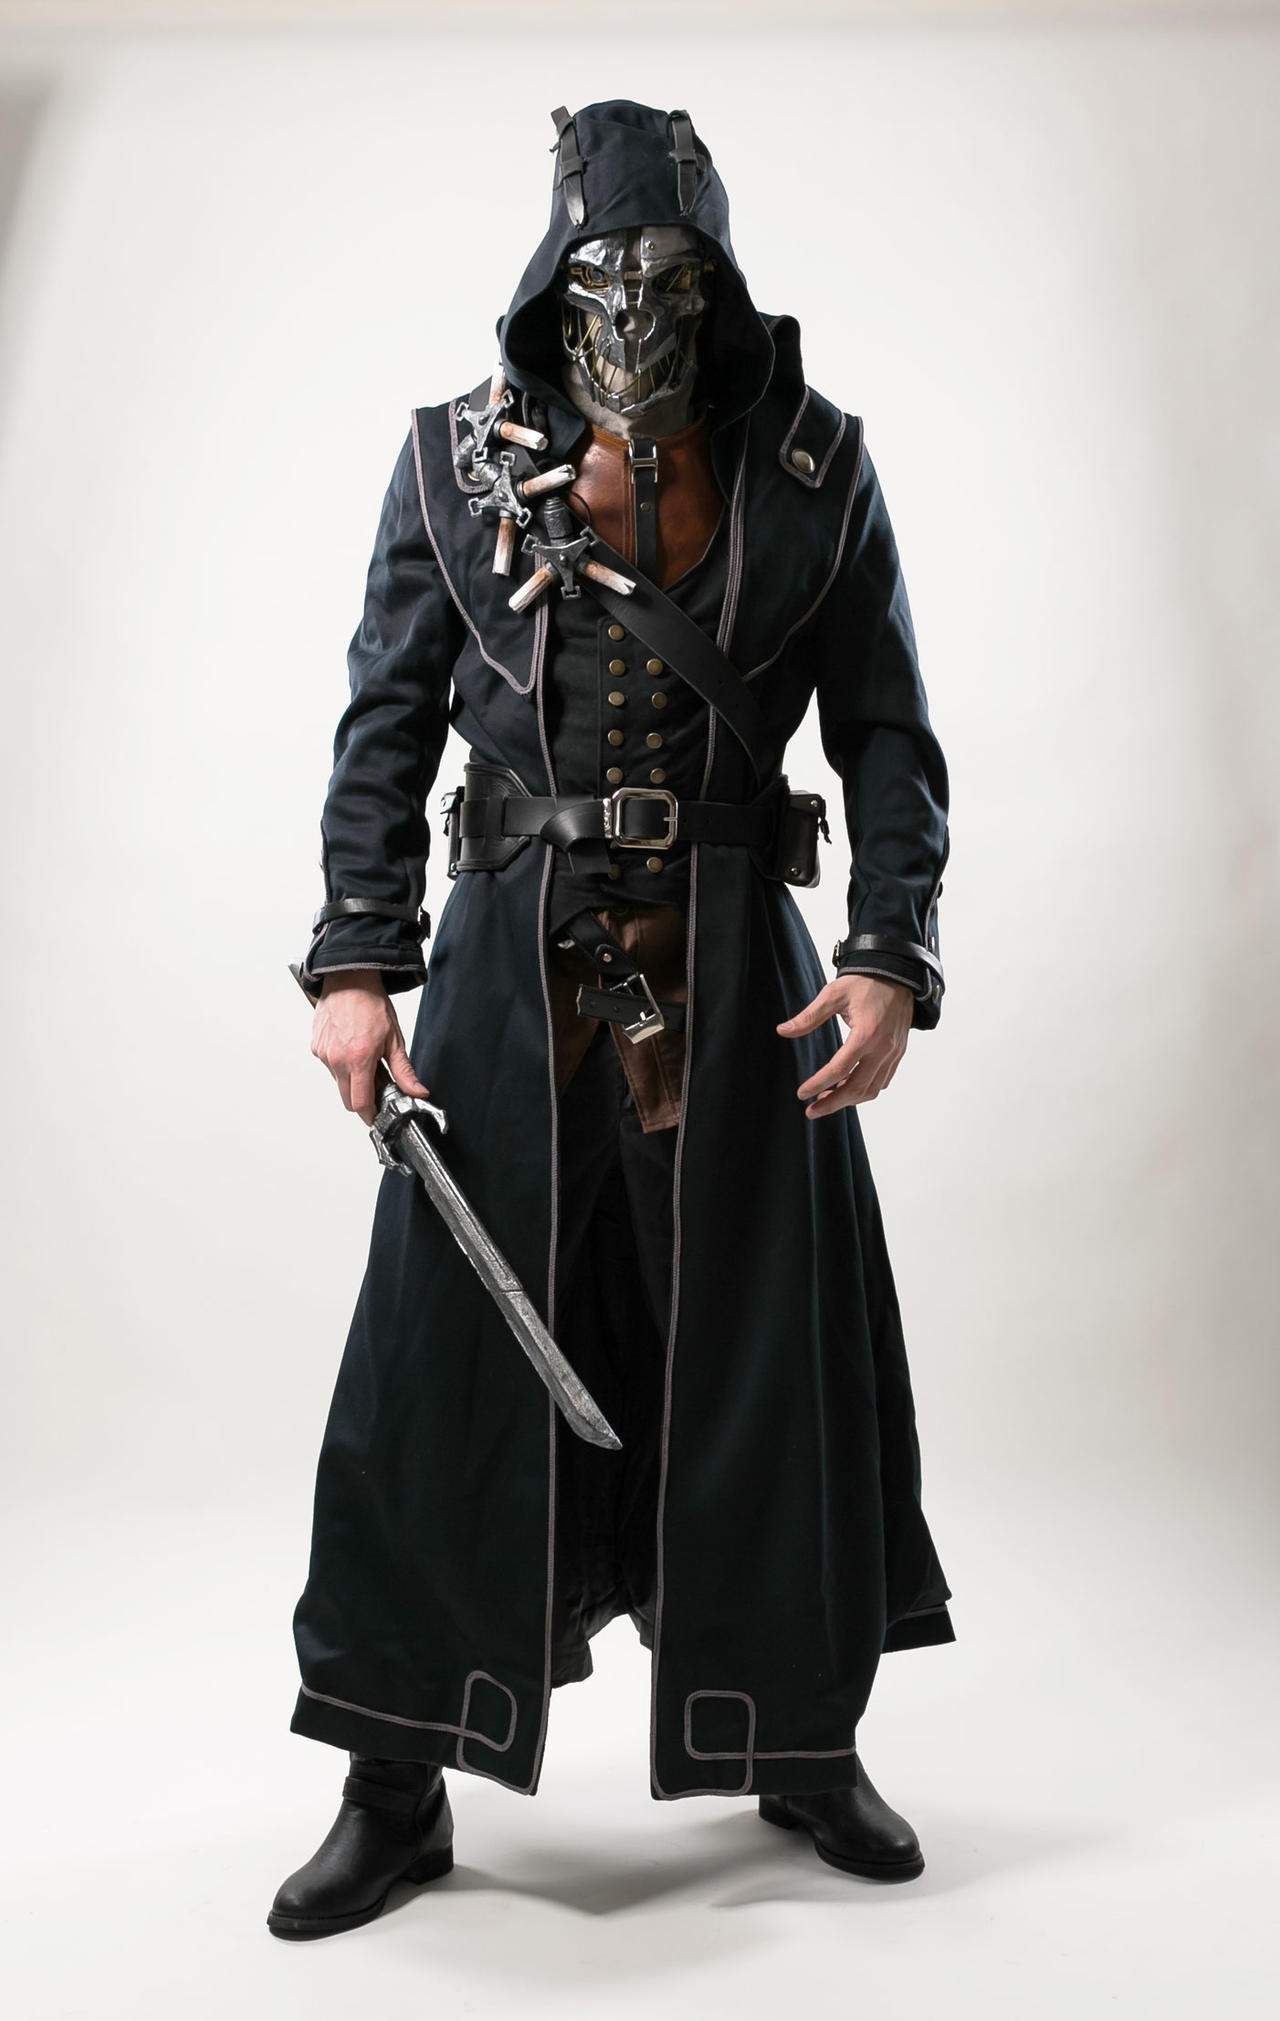 Corvo Attano, cosplay - Dishonored